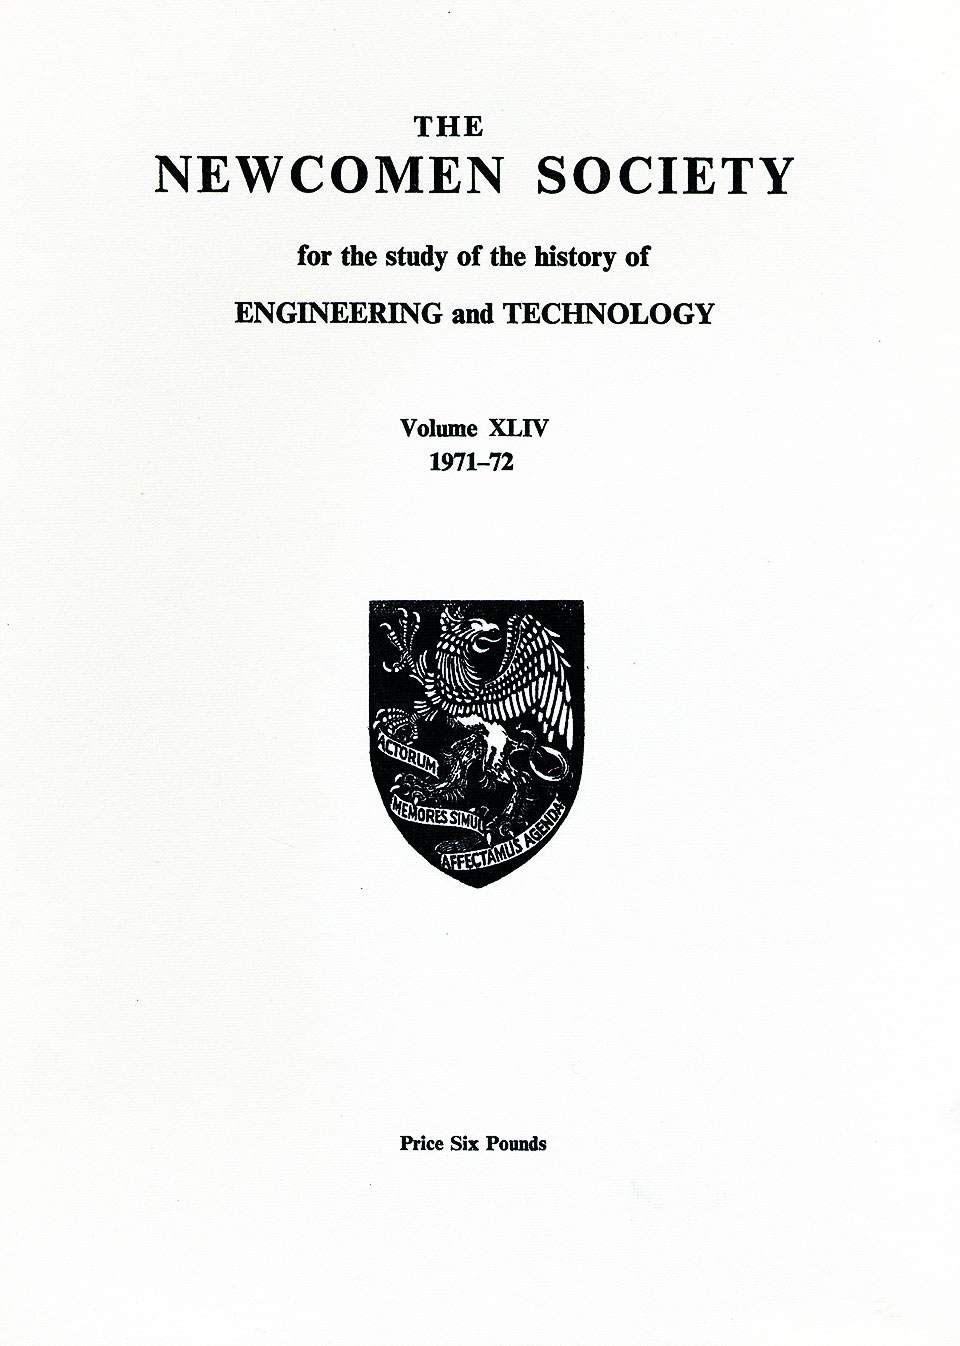 The Journal - V44 No1 1971-72 - cover